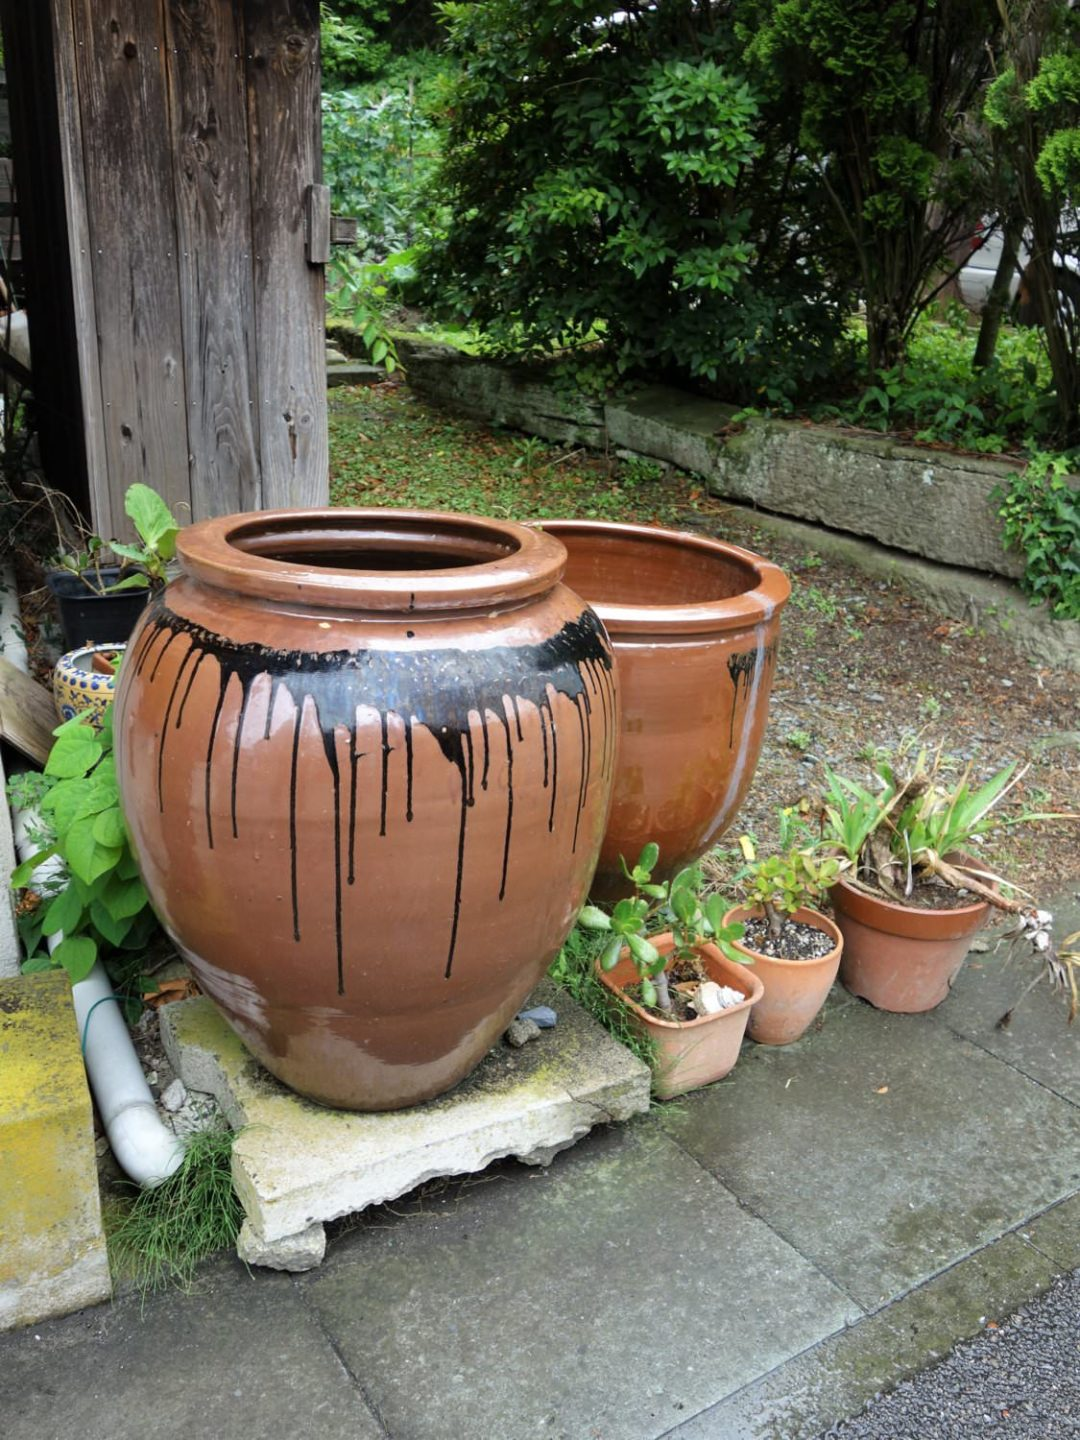 Water jugs along the street of Omori district